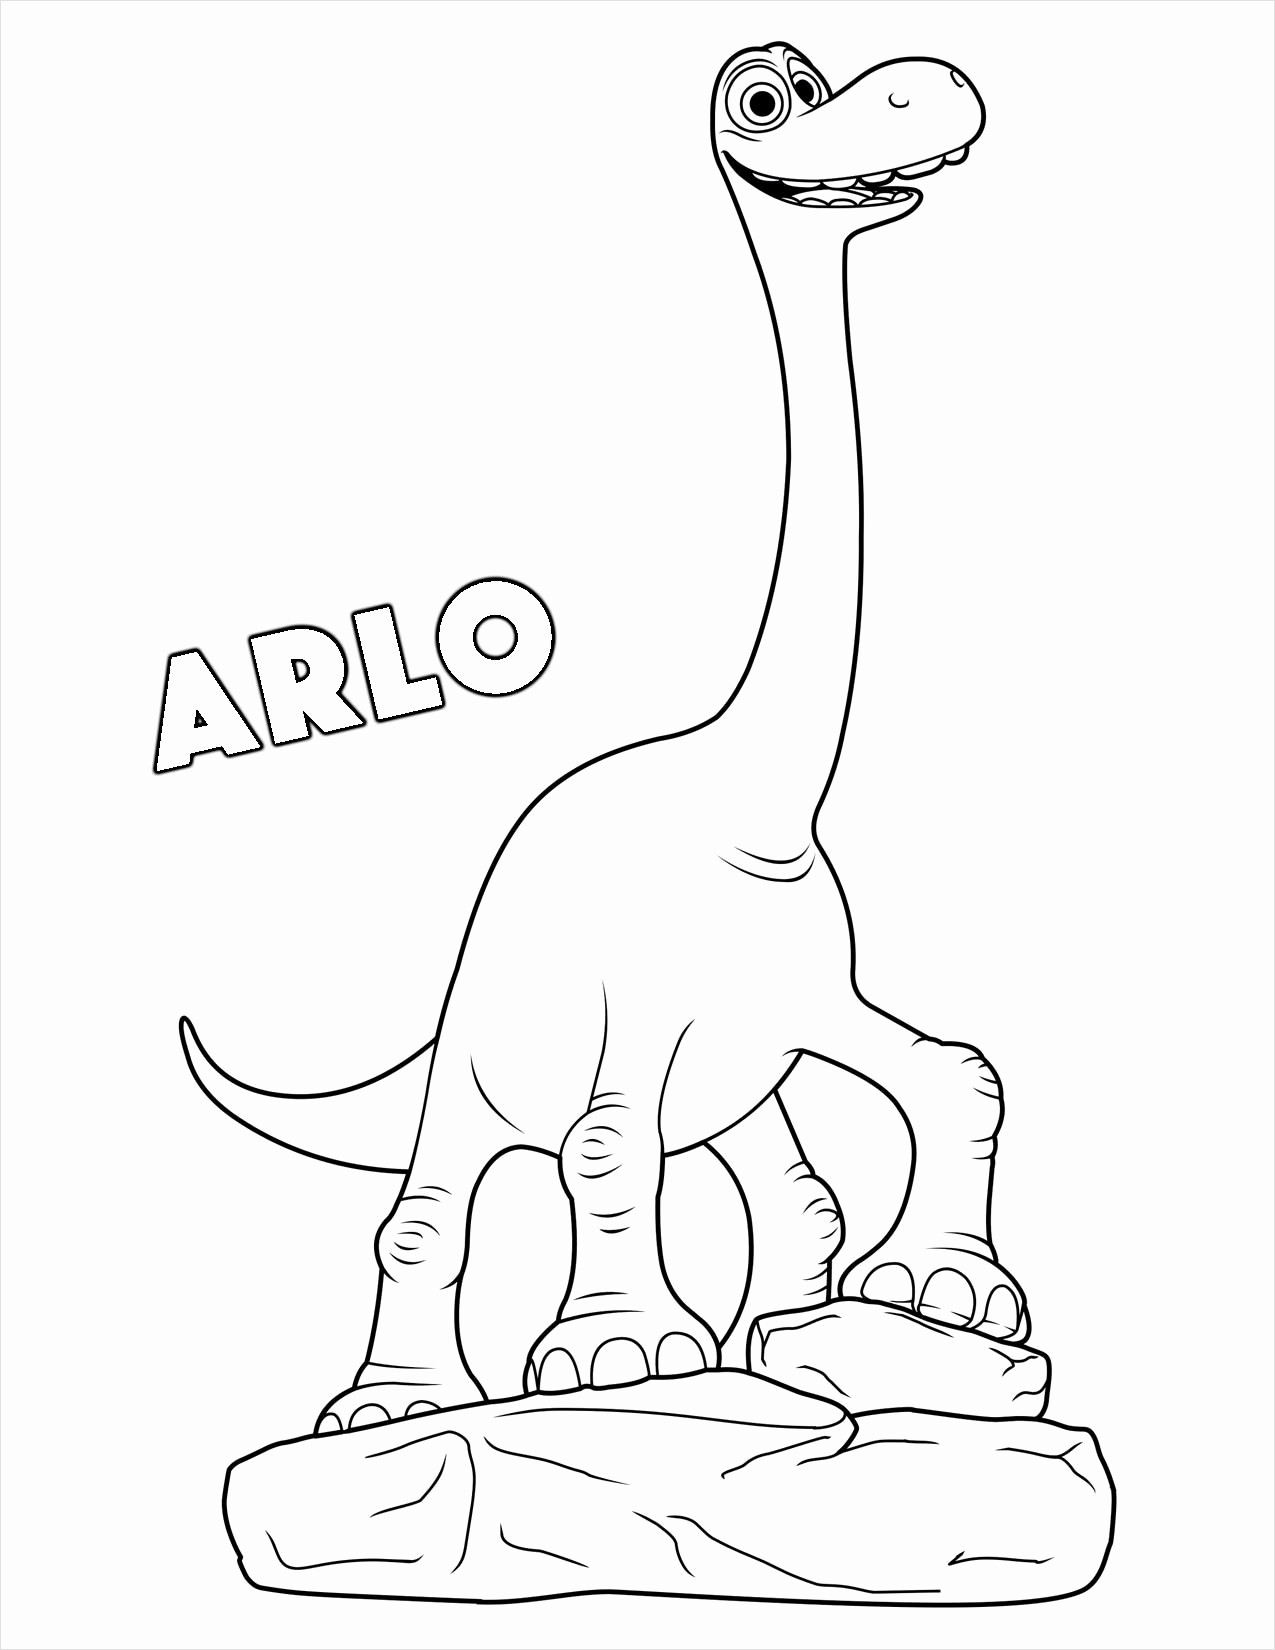 Ausmalbilder Zoo Einzigartig 29 Zoo Animals Printable Coloring Pages Download Coloring Fotos